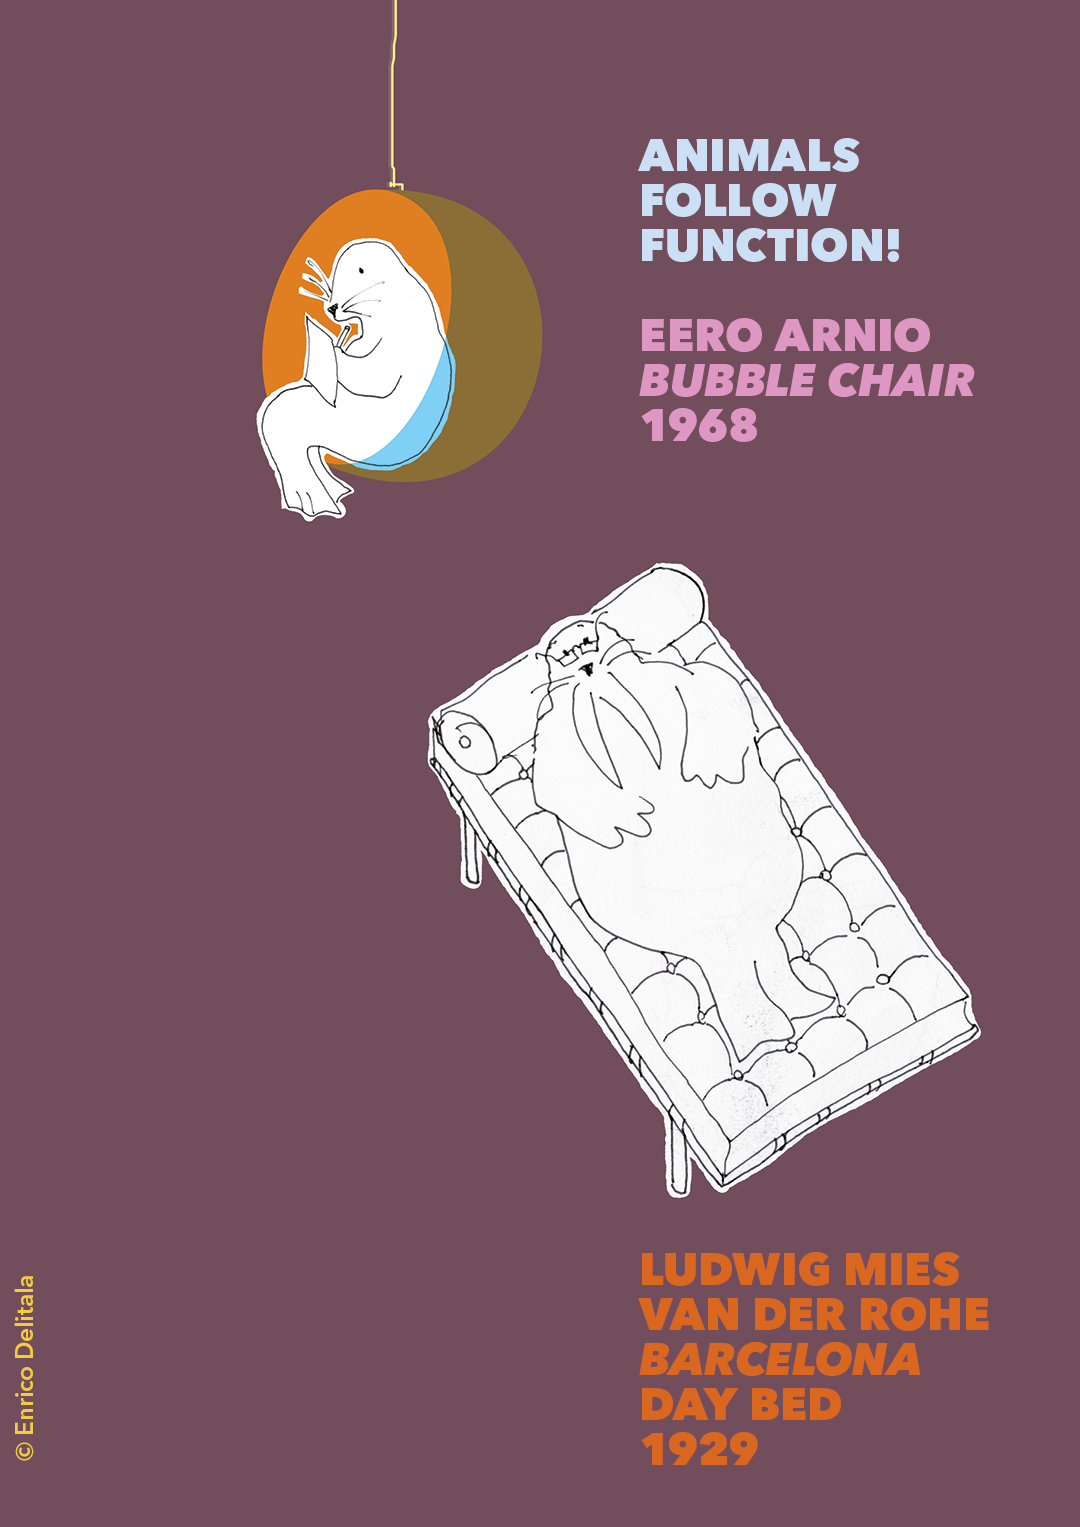 Foca + tricheco: Enrico Delitala illustrator animals follow function form follows function Mies van der Rohe Eero Aarnio Bubble chair Barcelona day bed